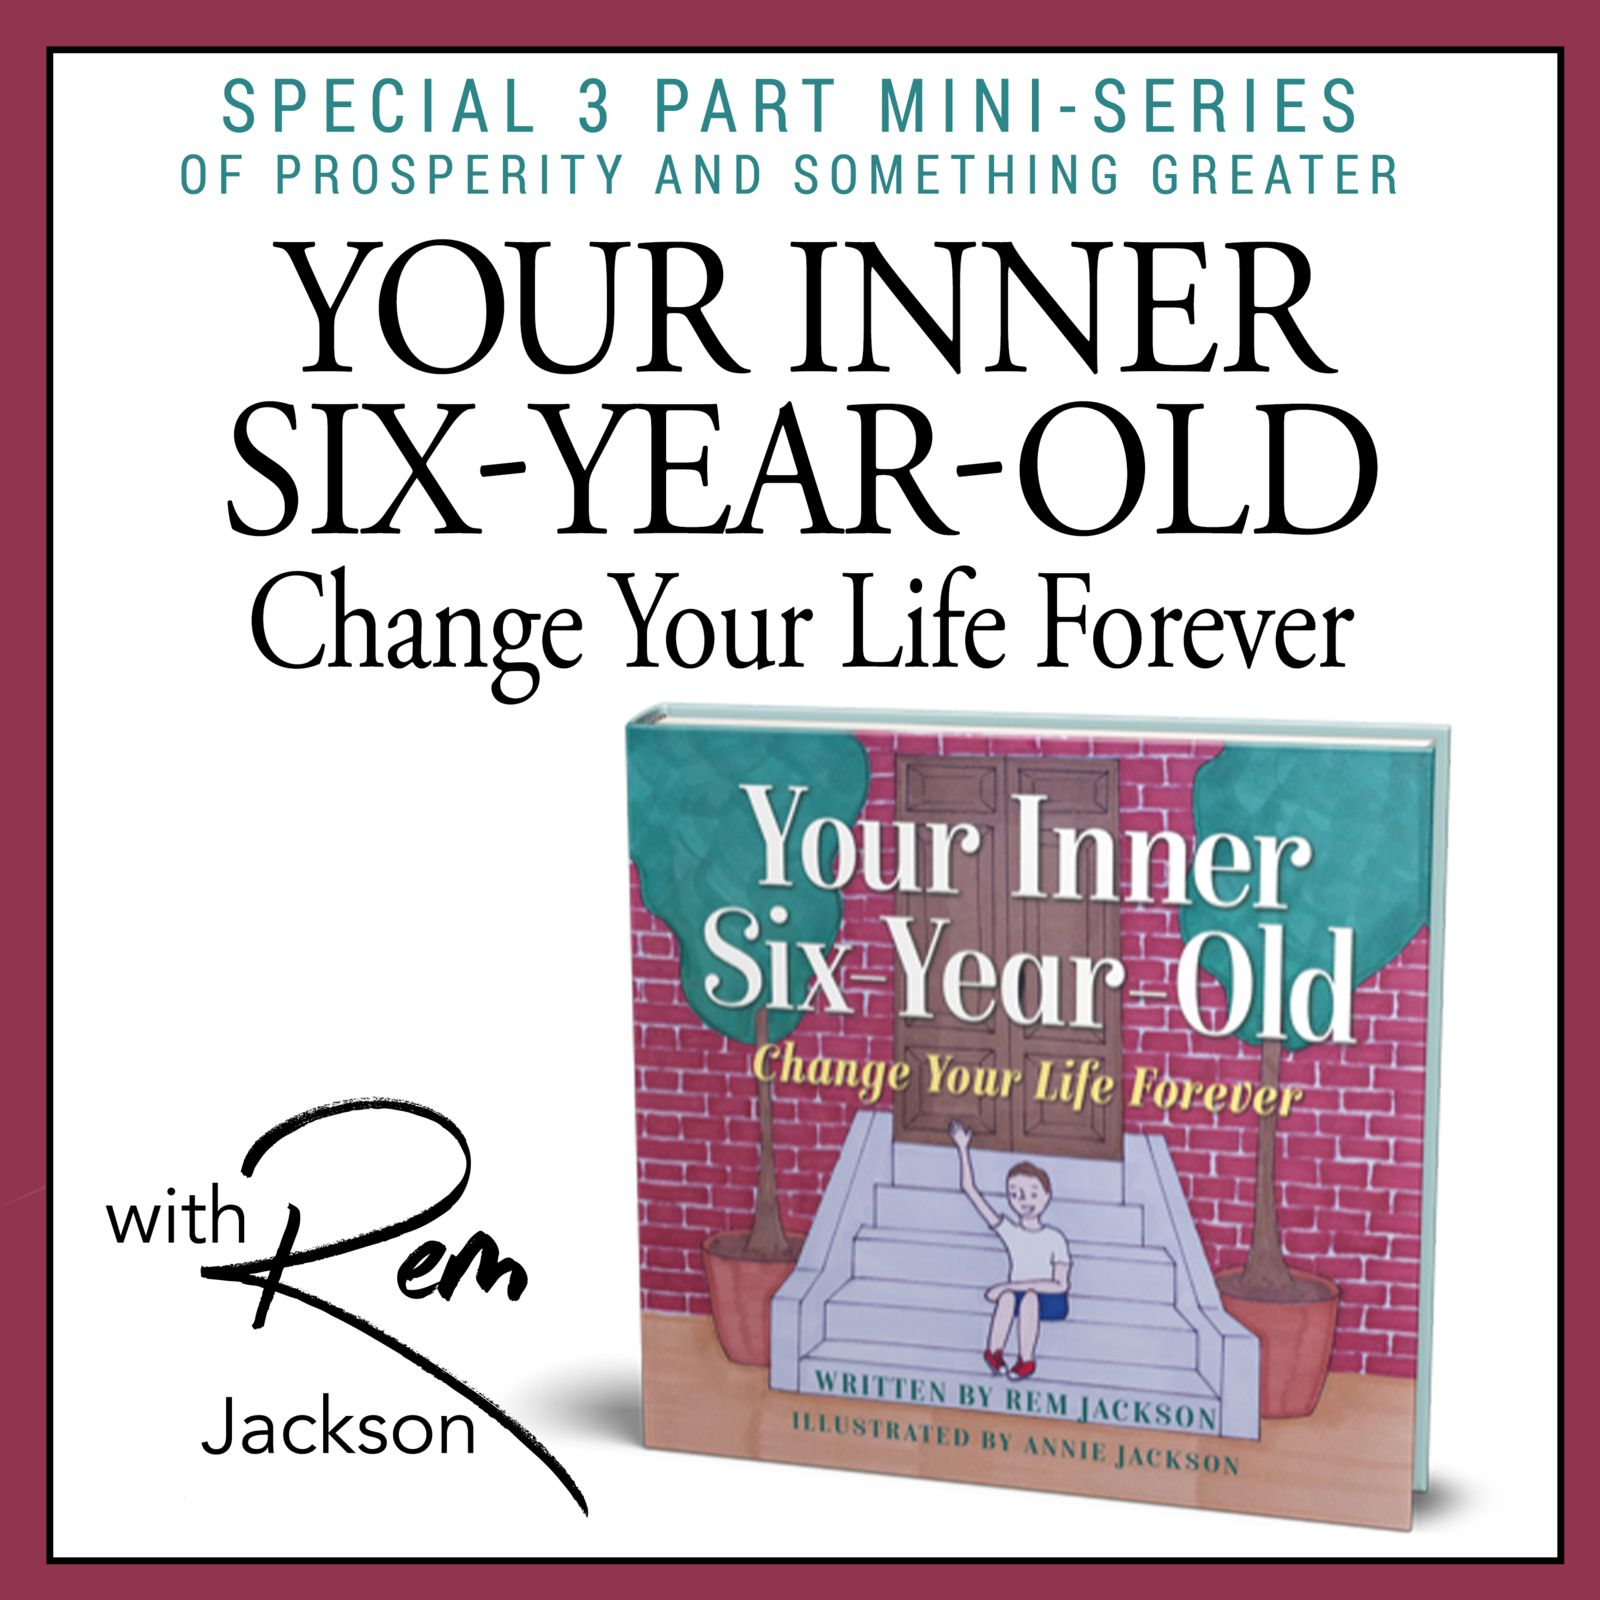 Your Inner Six-Year-Old